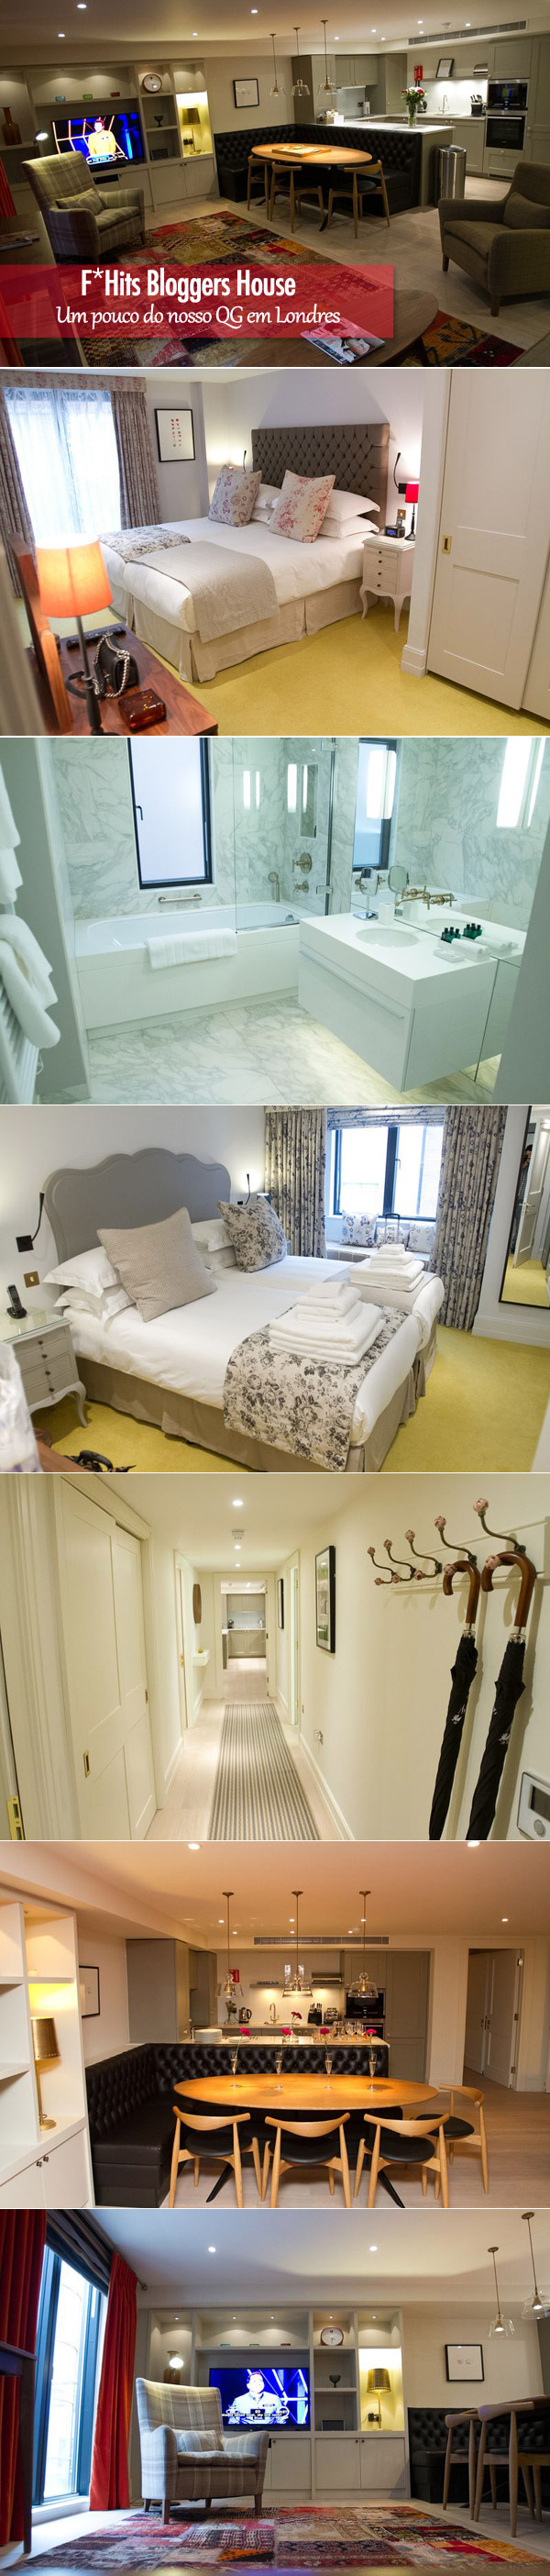 cheval-residence-f-hits-london